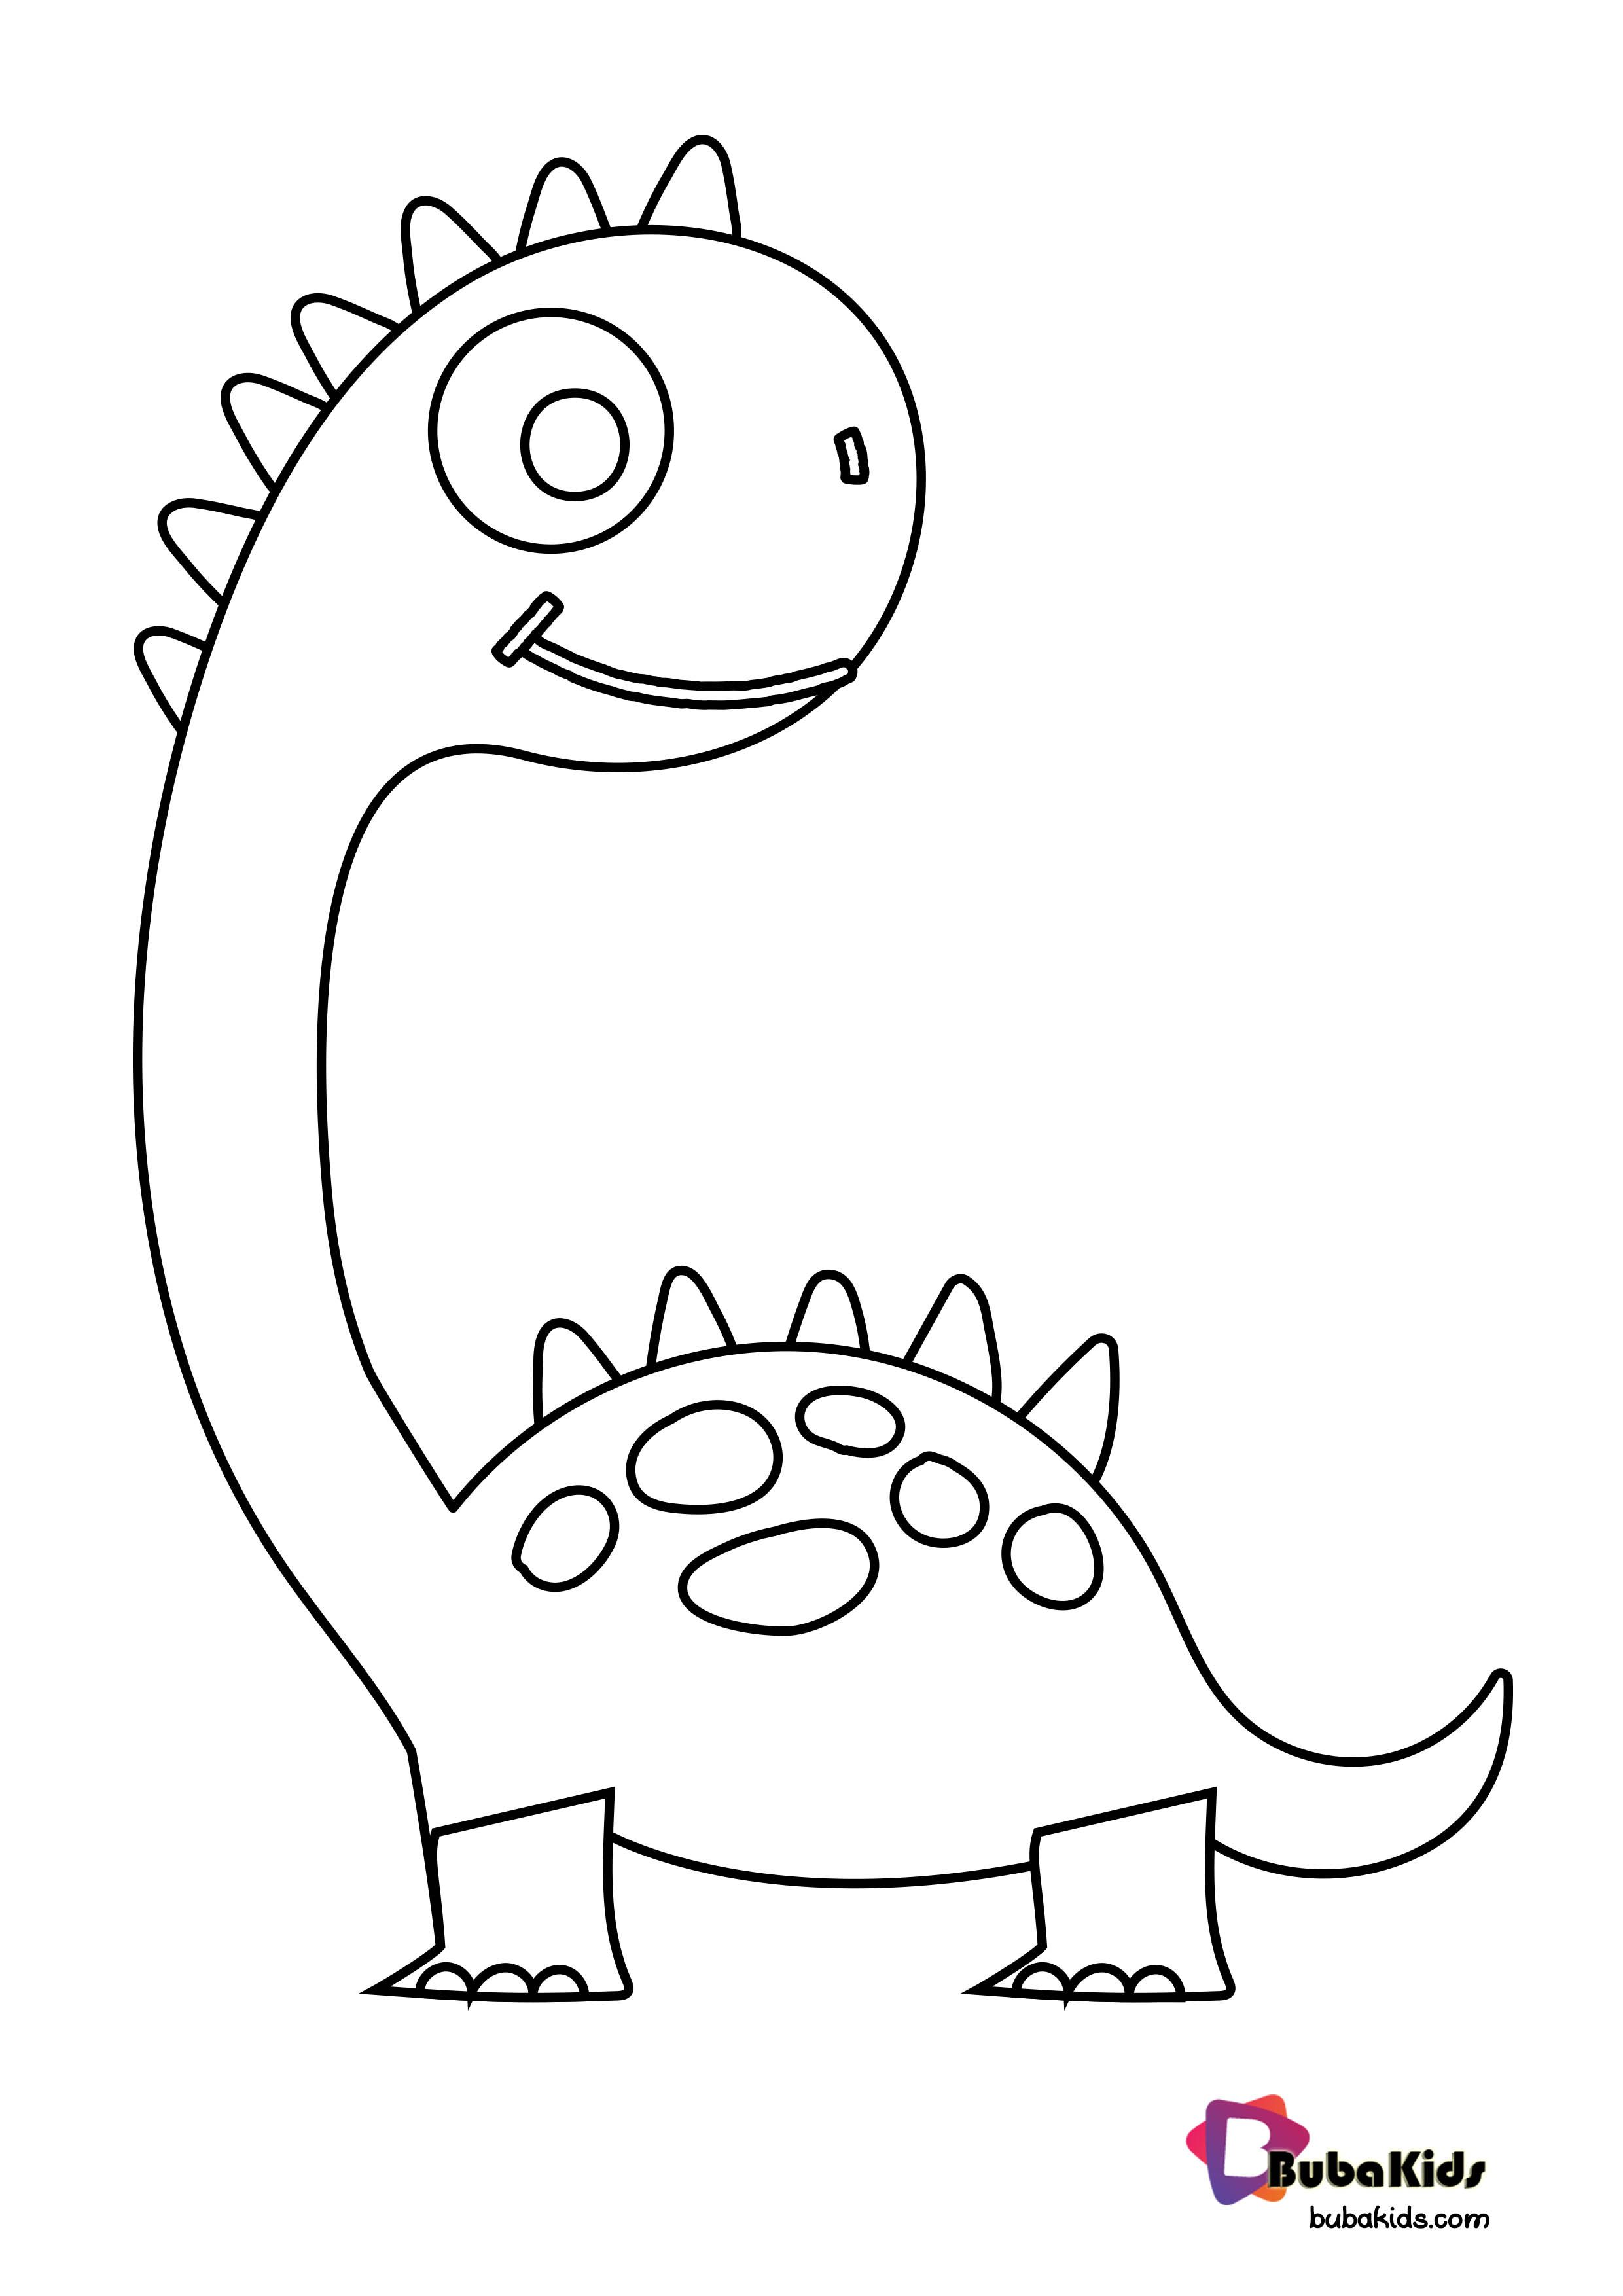 Cute Dinosaurs Coloring Page For Kids Cutedinosaurs Dinosaurscoloringpage Dinosaurs Color In 2020 Dinosaur Coloring Pages Coloring Pages For Kids Dinosaur Coloring